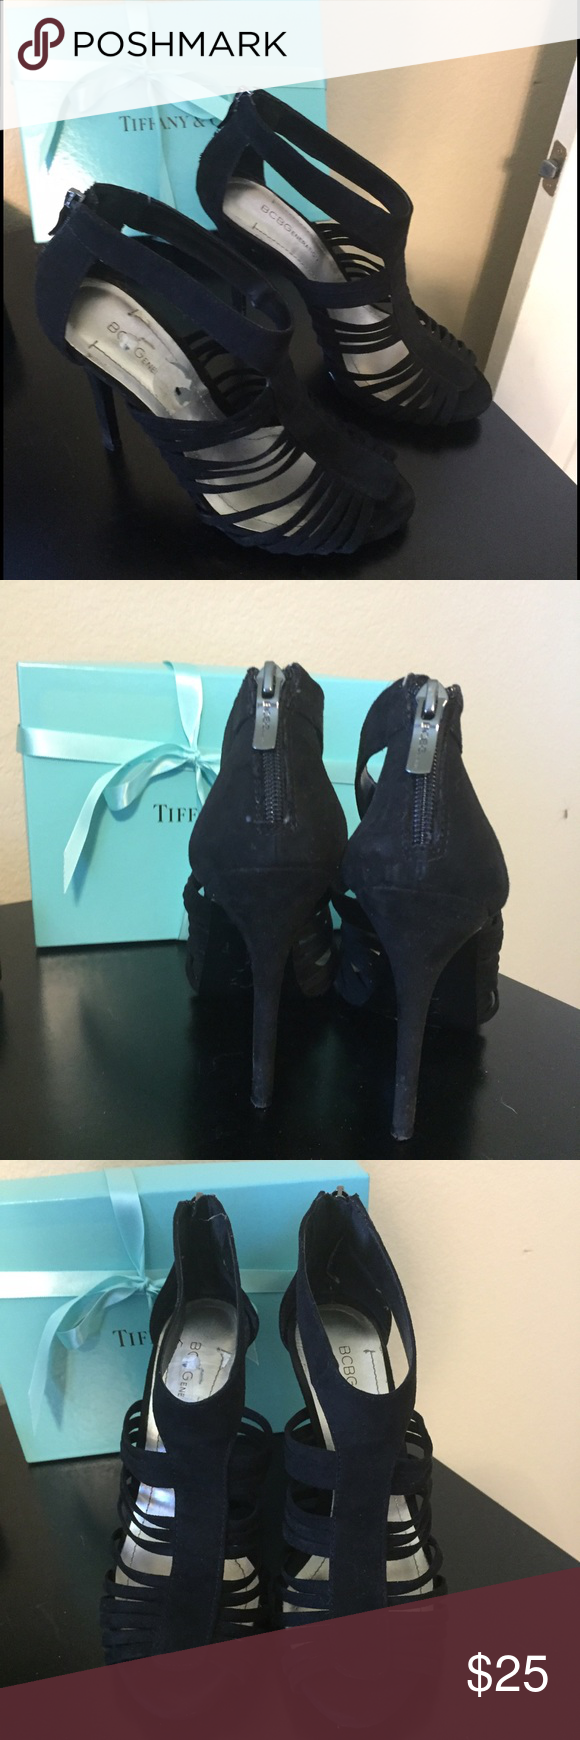 BCBG Black Velour Heels size 7 Beautiful black heels in velour with zip up backs. Only worn a handful of times. Size 7 but can also fit a 7.5. Open to offers and trades with positive feedback. BCBGeneration Shoes Heels